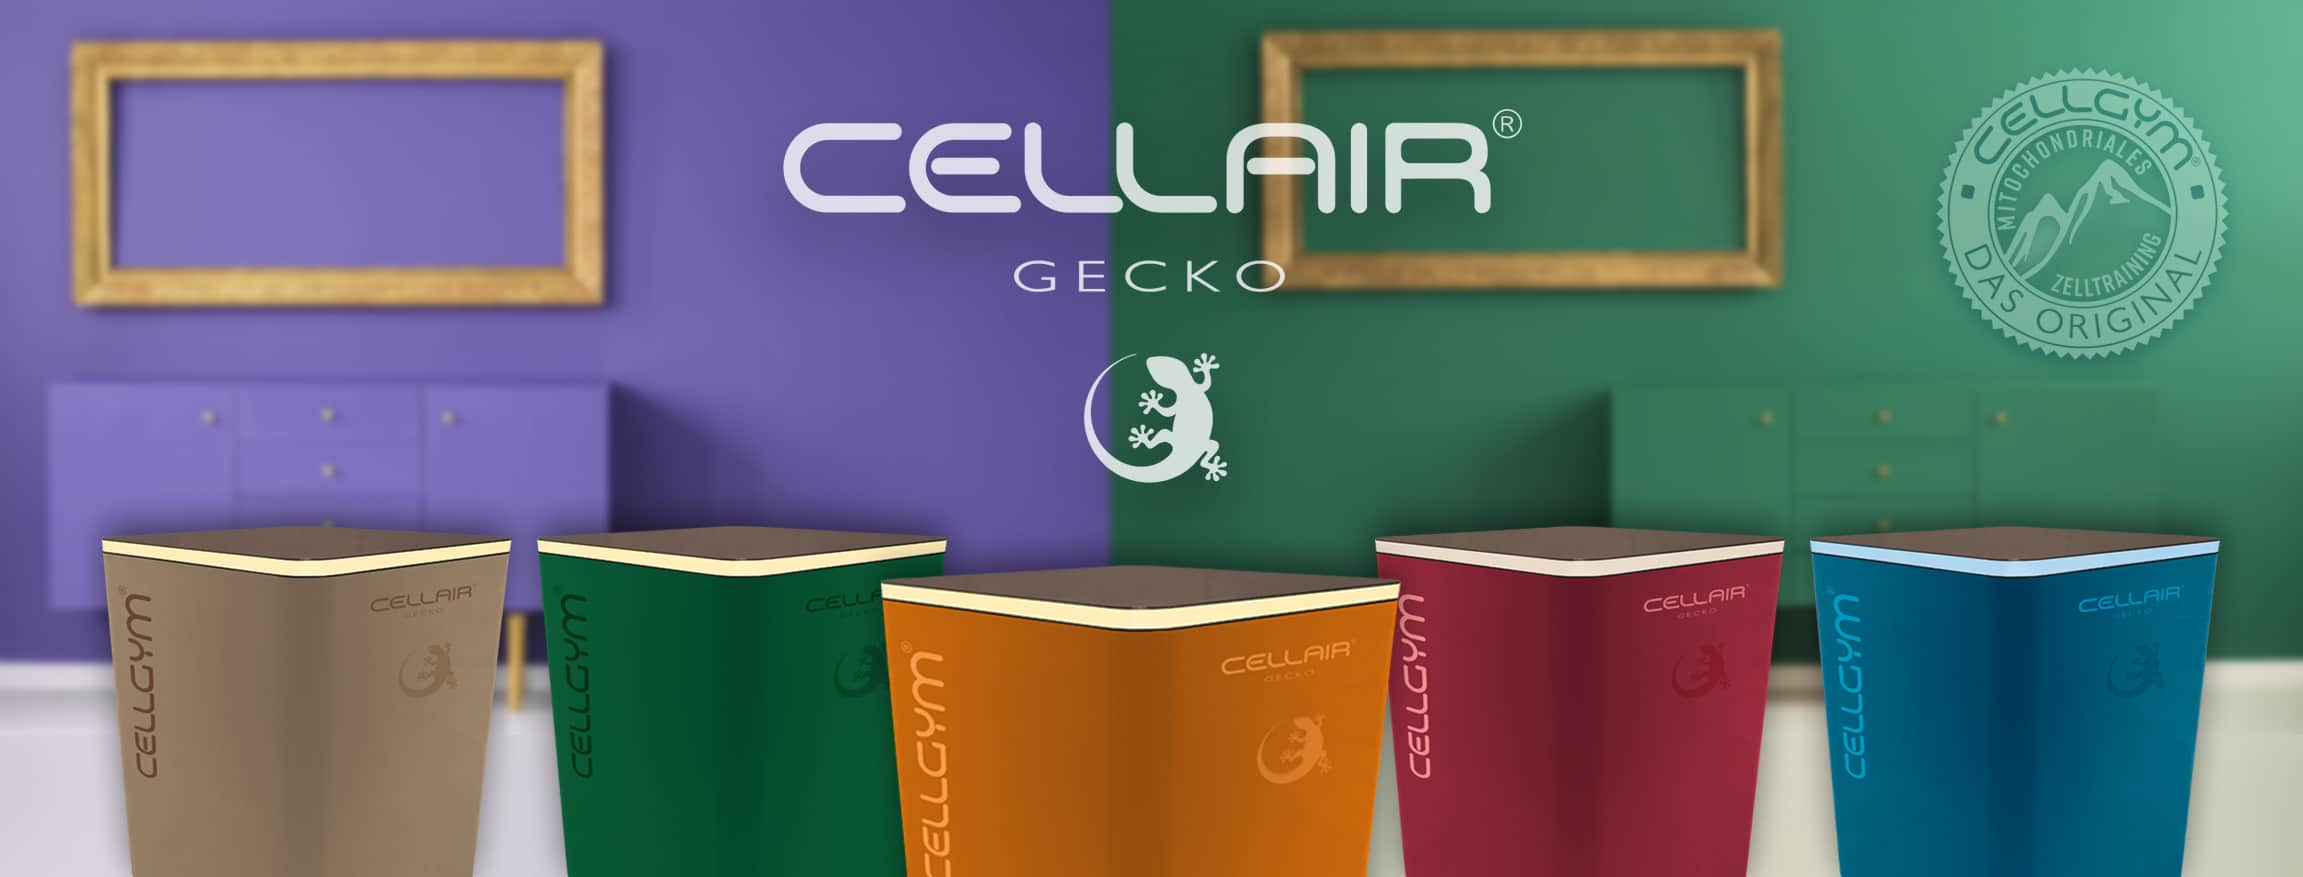 CellAir GECKO – so individuell wie Ihr Zuhause … Cellgym CellAir Gecko fuer Zuhause 1